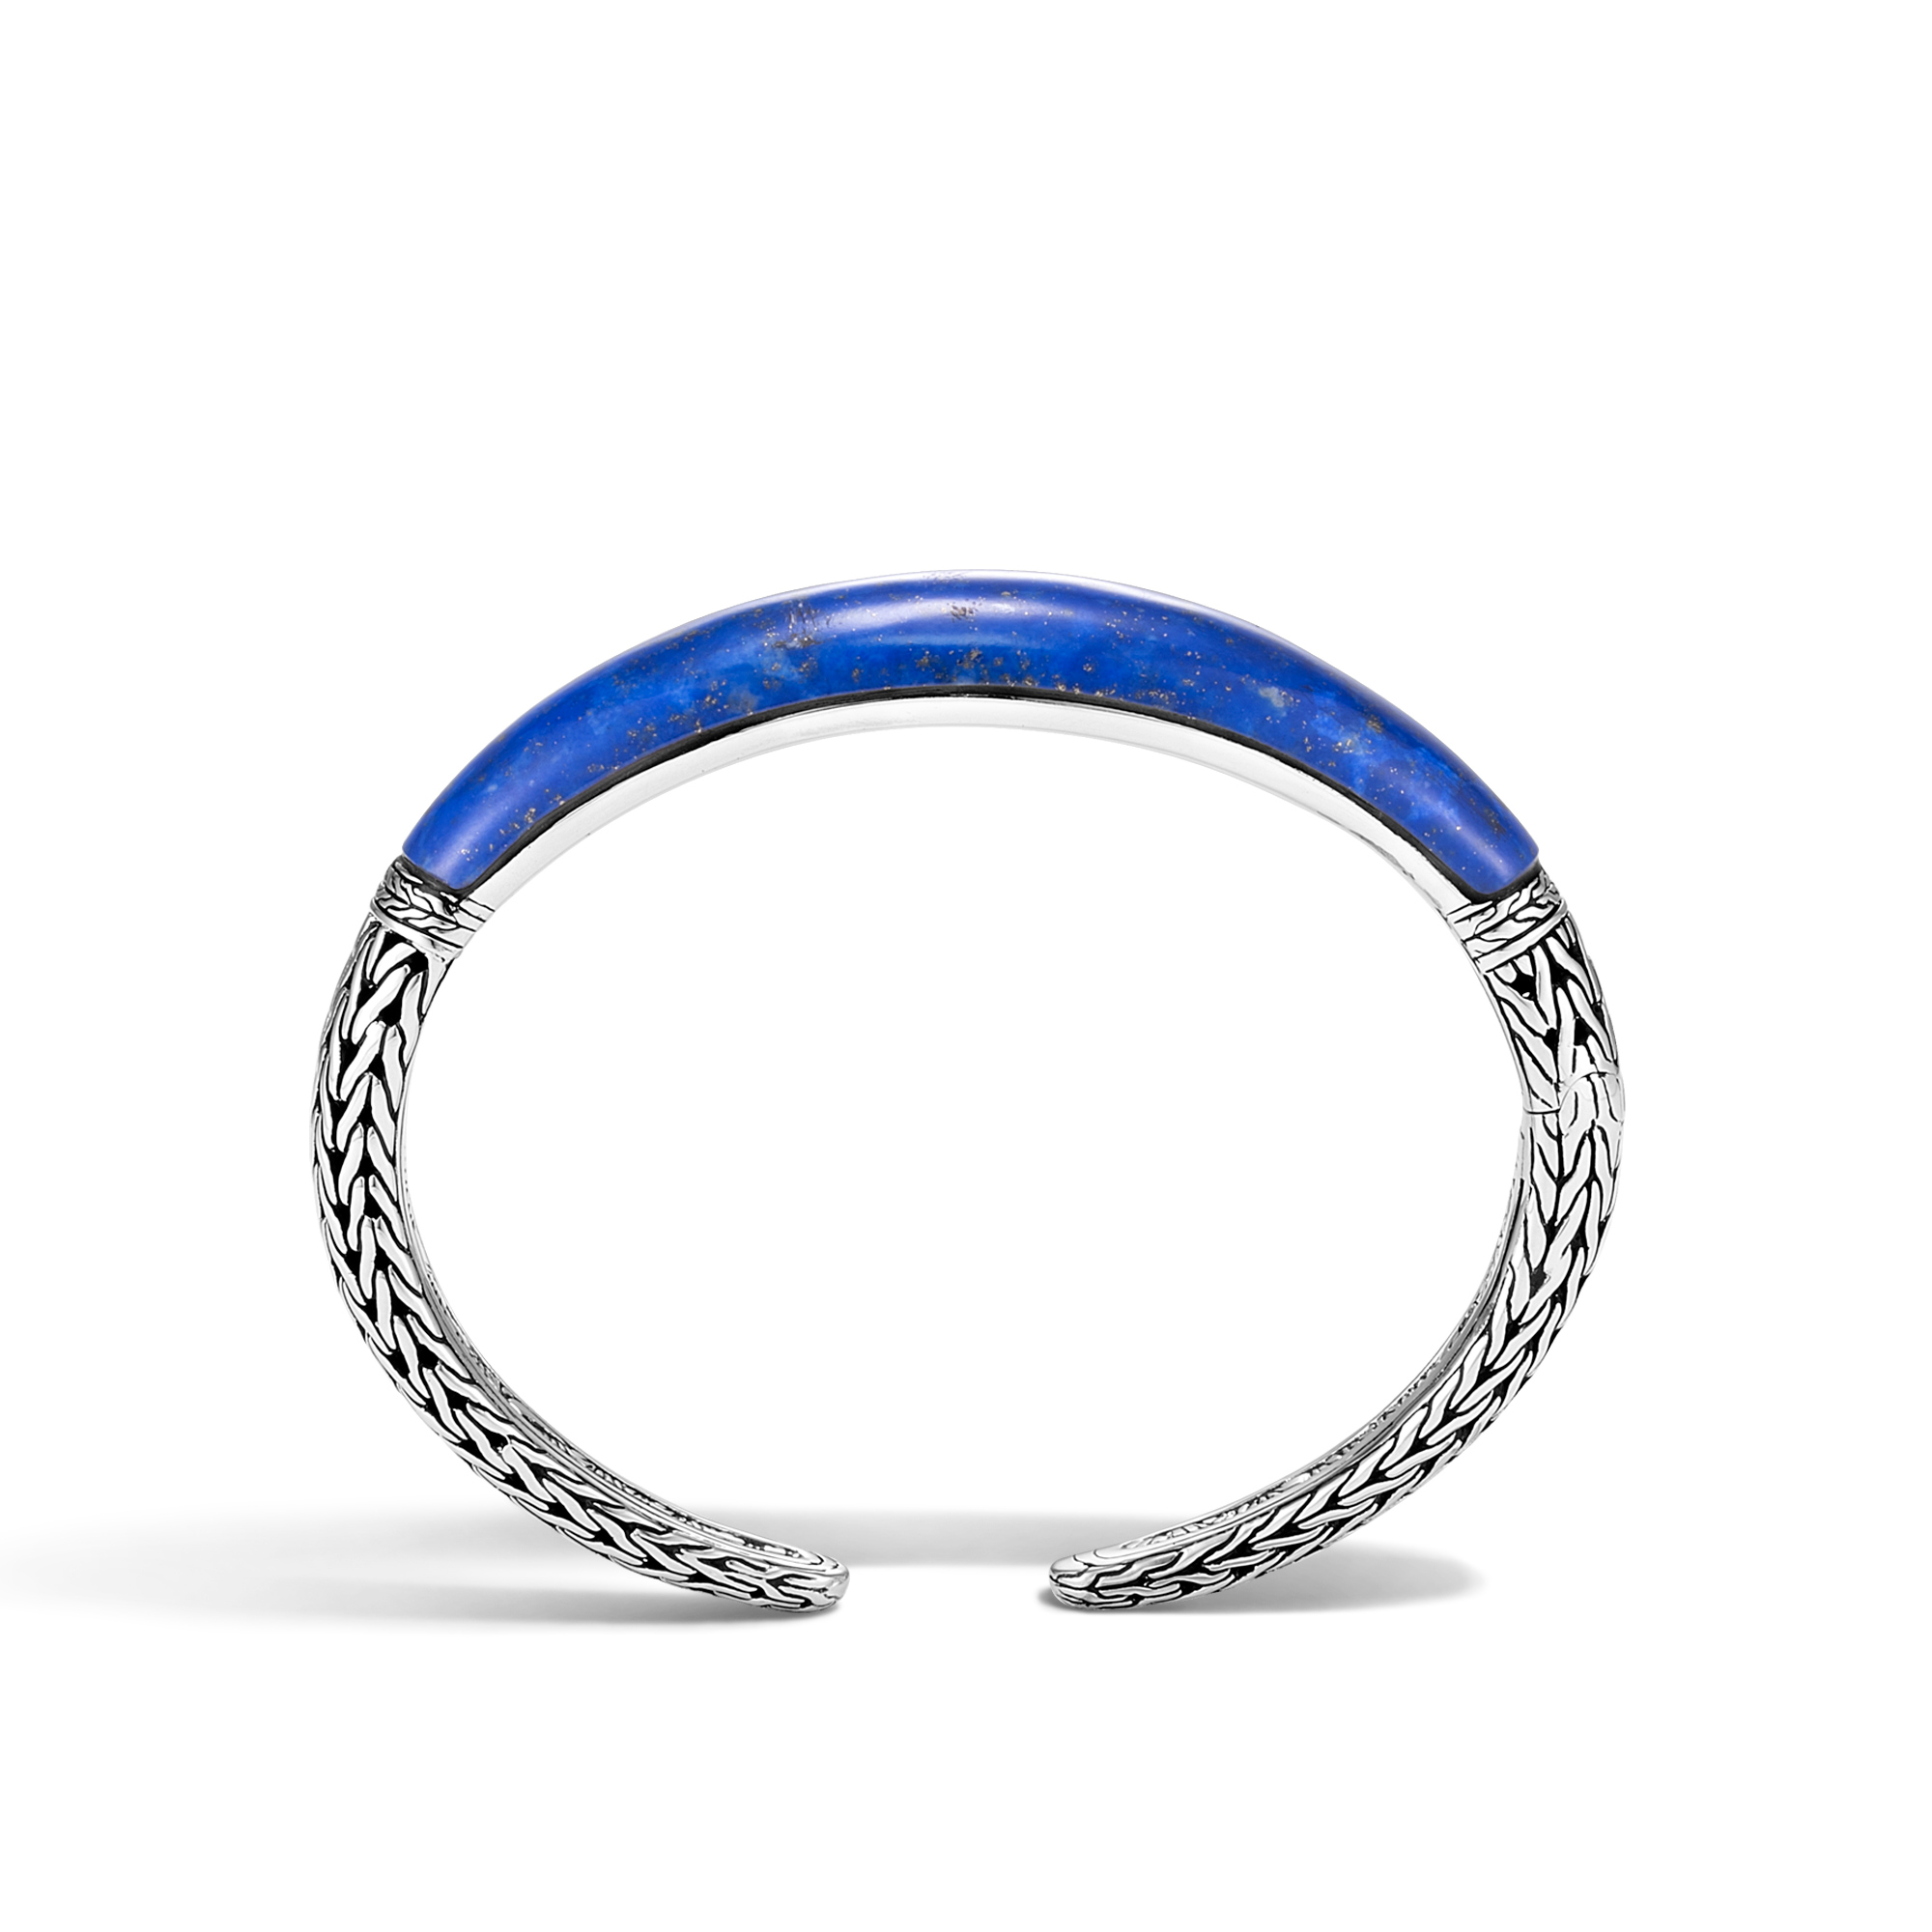 Classic Chain 11mm Kick Cuff in Silver with Gemstone, Lapis Lazuli, large